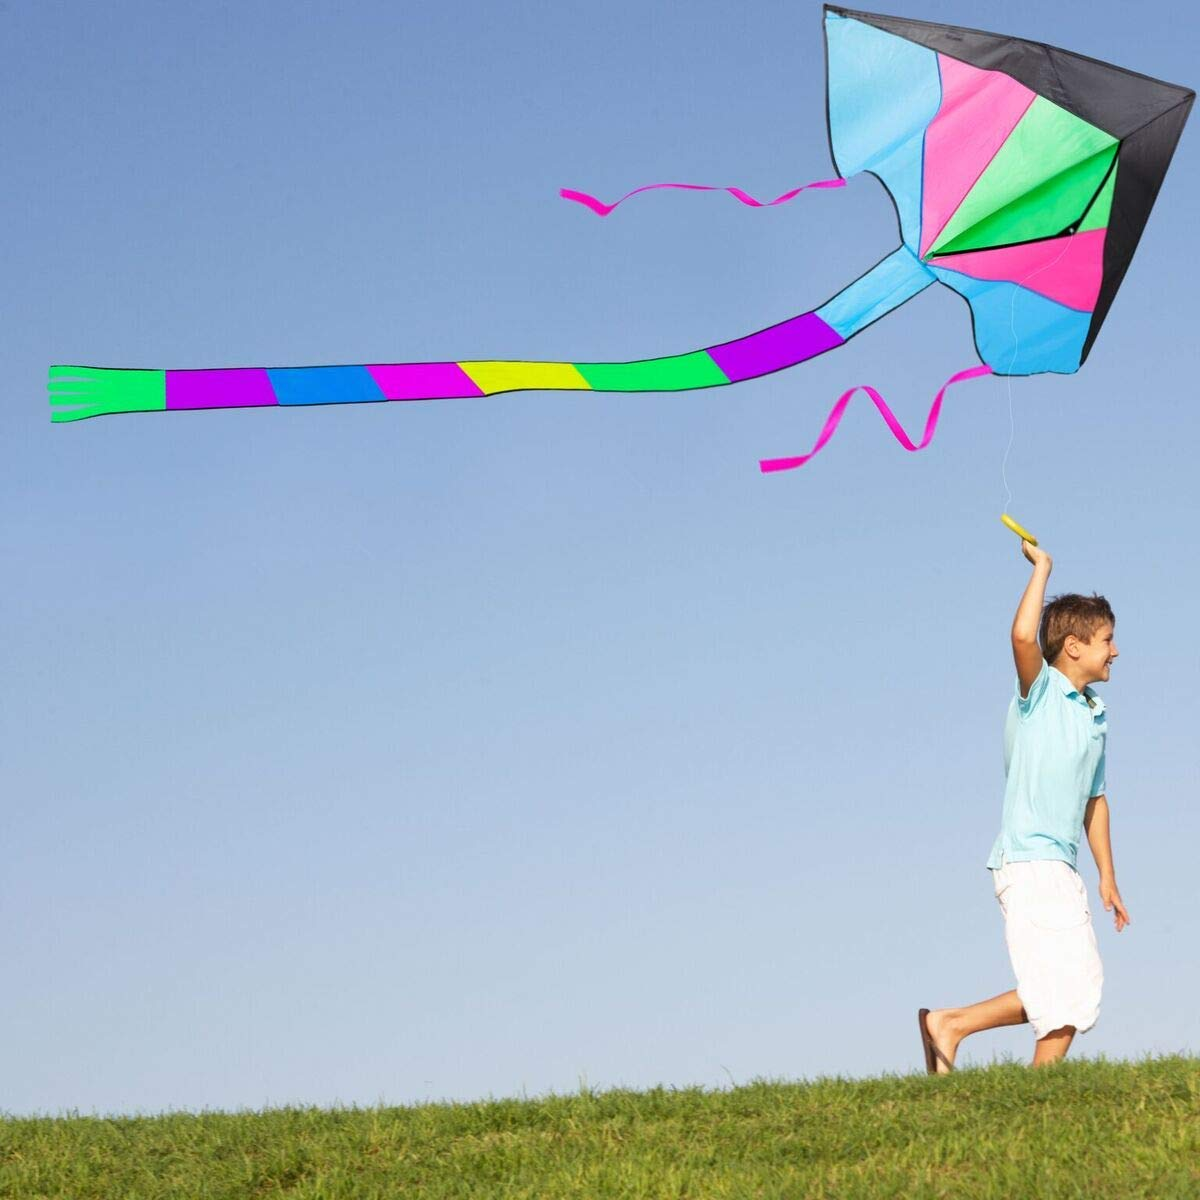 Flying a kite is a good sport!